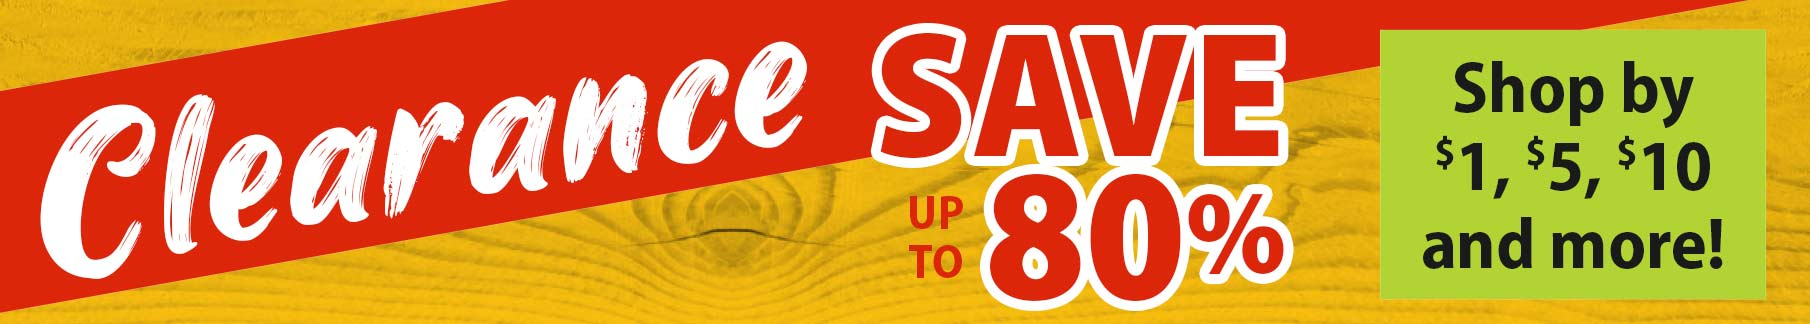 Clearance Save up to 80%